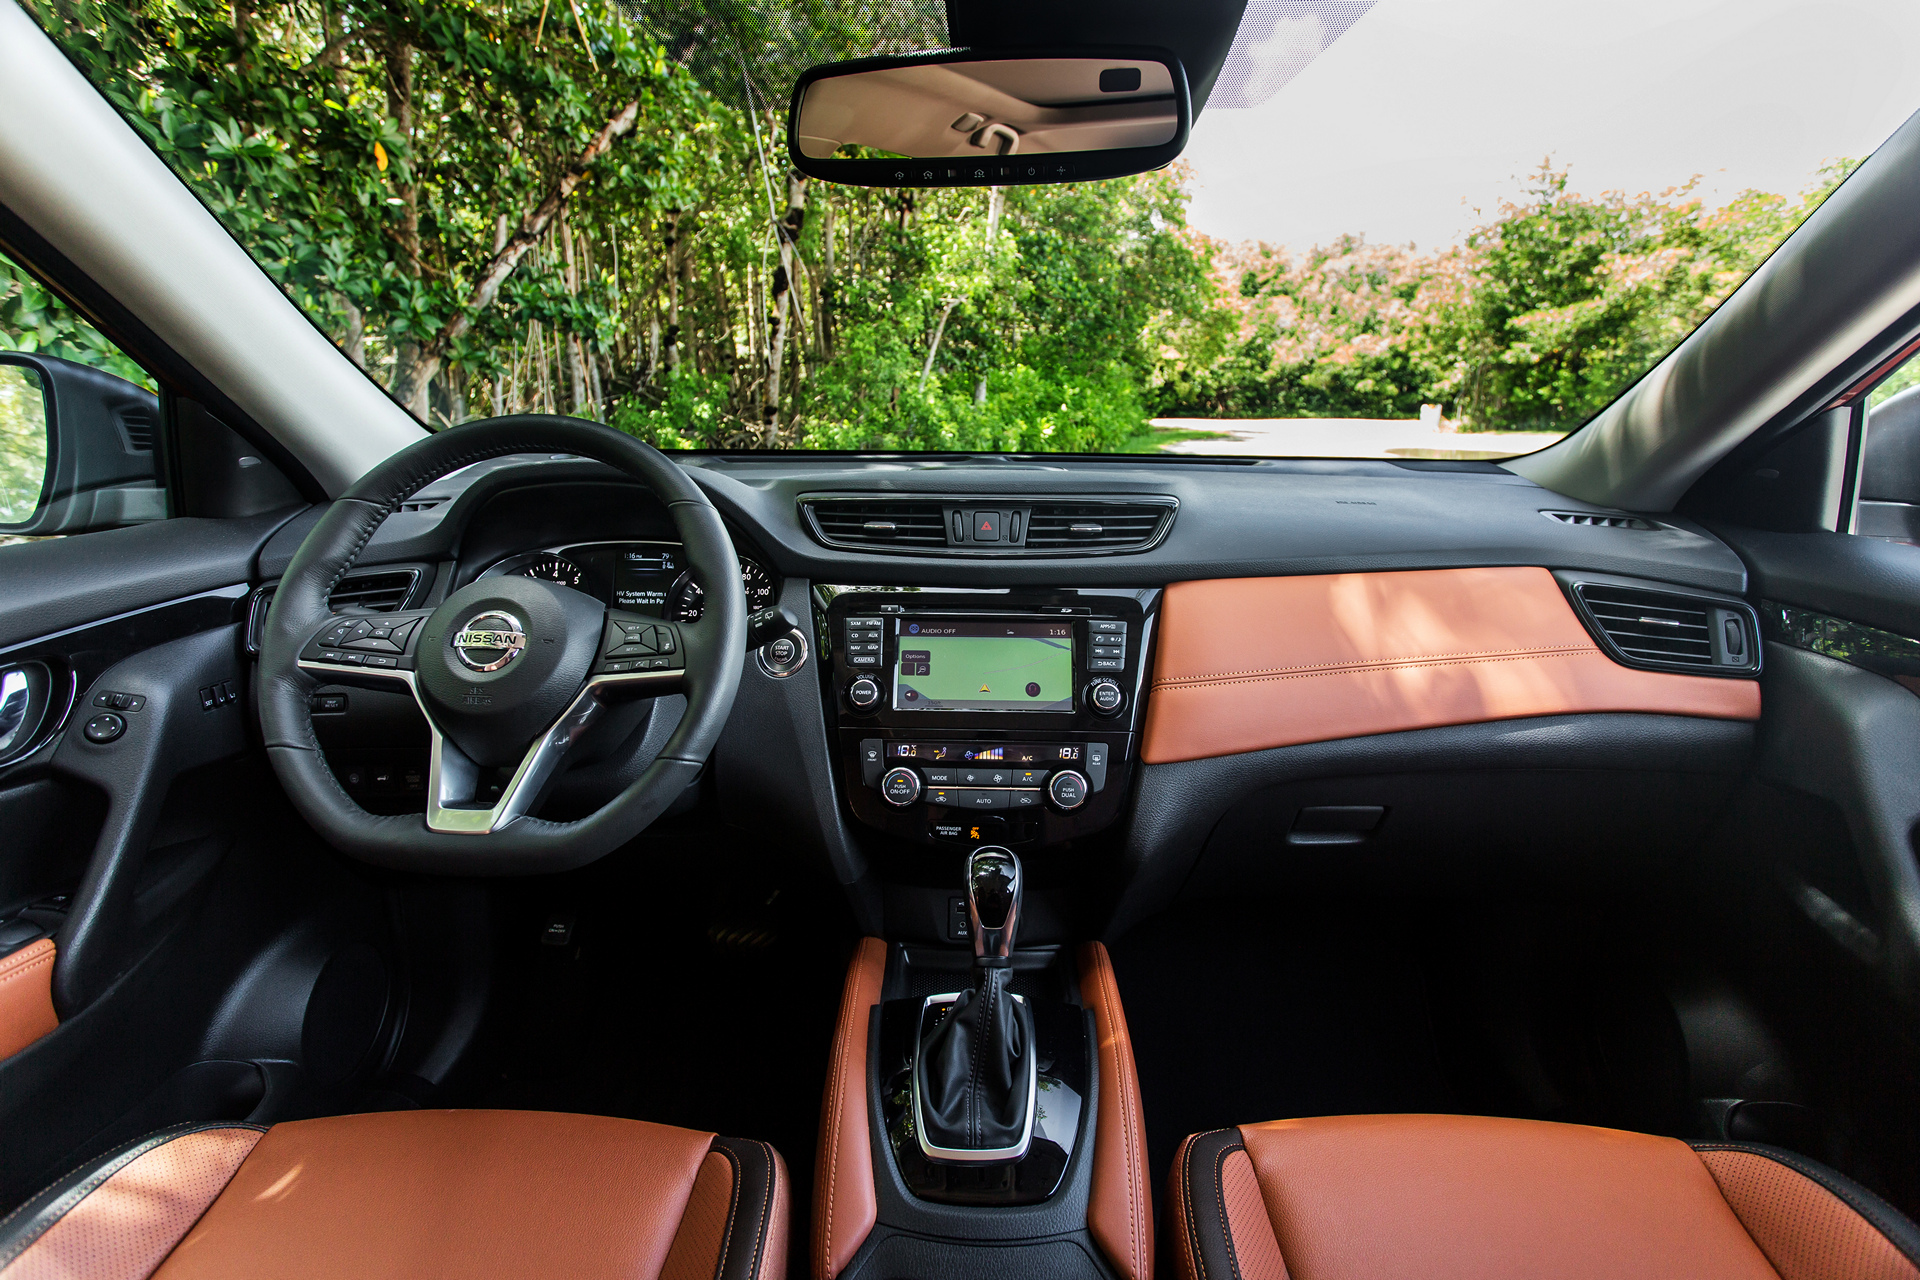 2017 Nissan Rogue © Nissan Motor Co., Ltd.